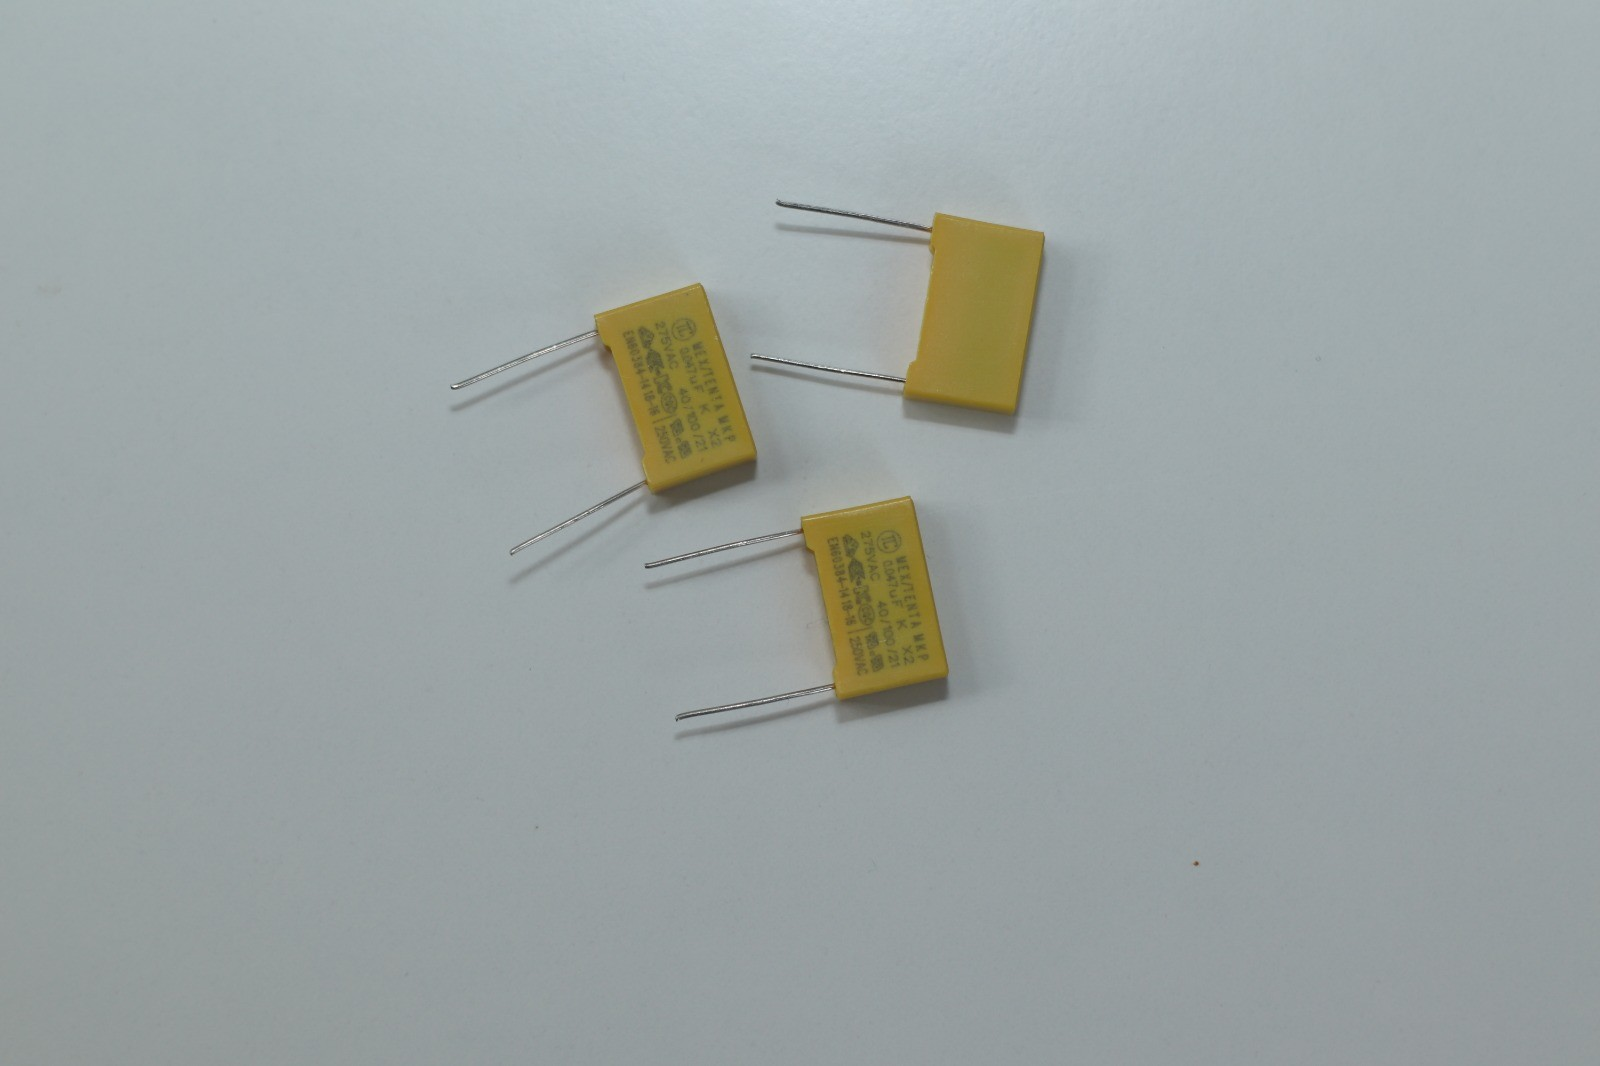 Capacitor Code And Values